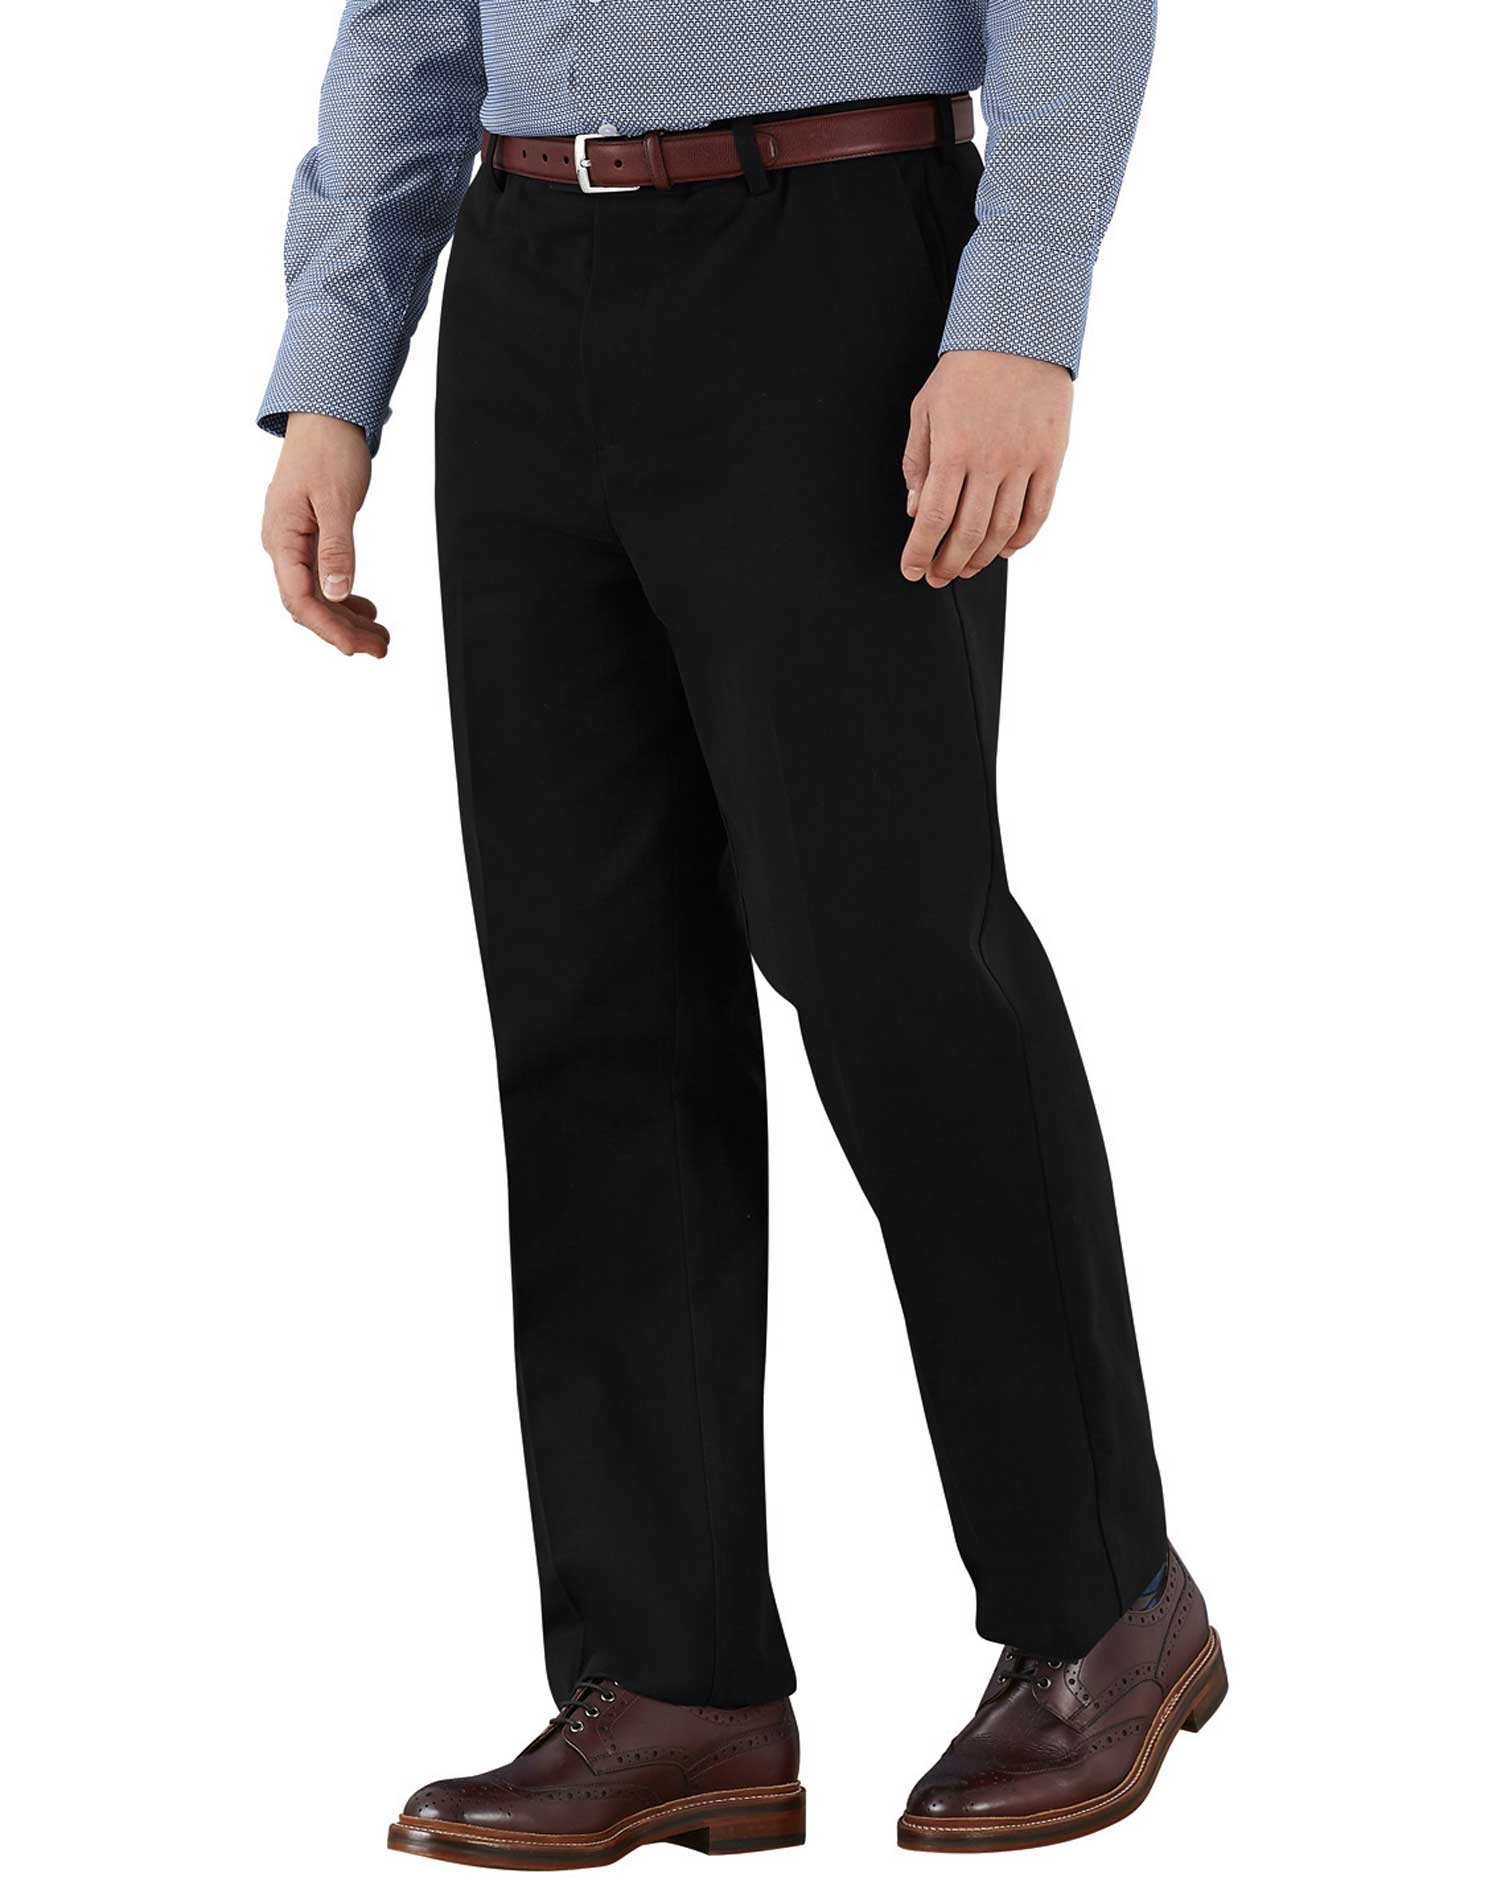 Black Classic Fit Flat Front Non-Iron Cotton Chino Trousers Size W38 L30 by Charles Tyrwhitt